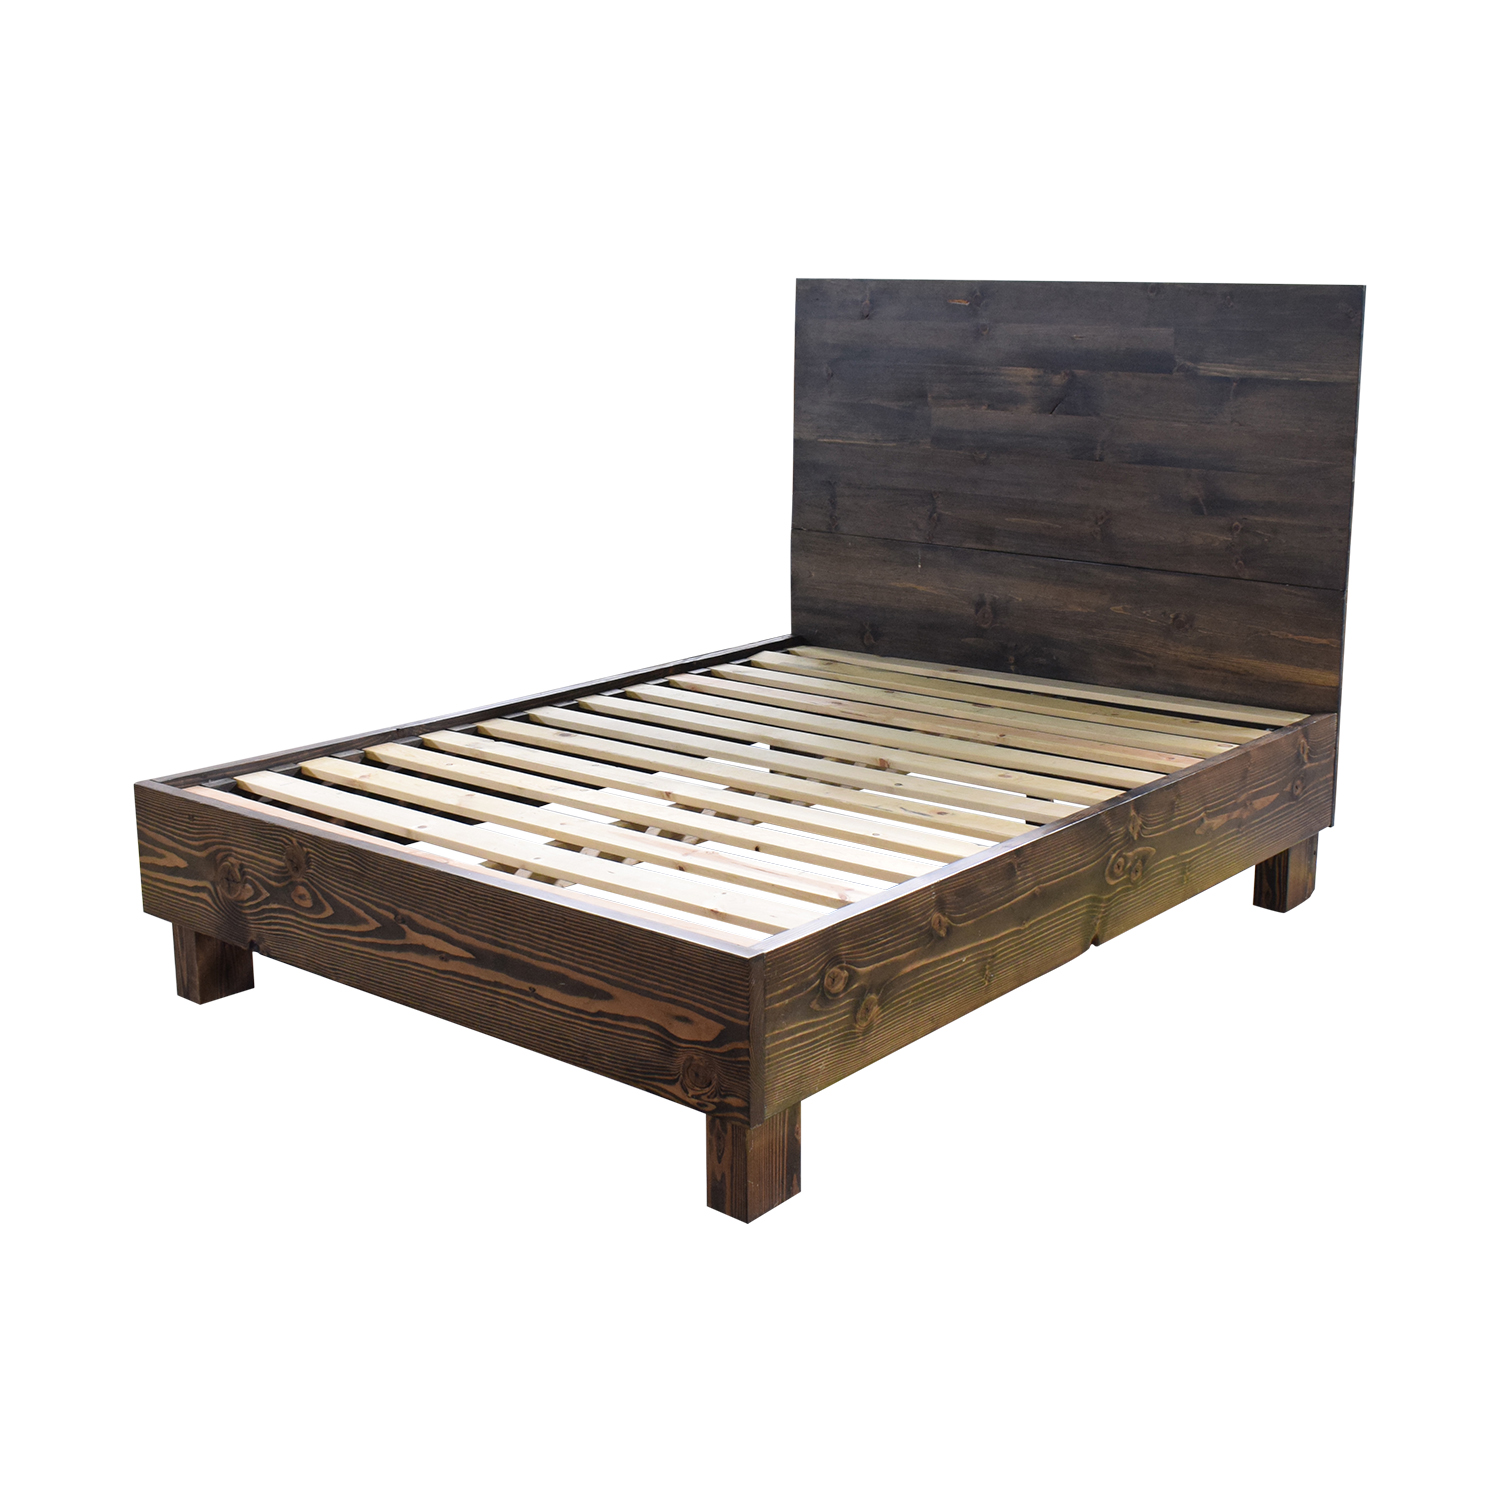 shop Etsy Etsy Wooden Queen Bed Frame online